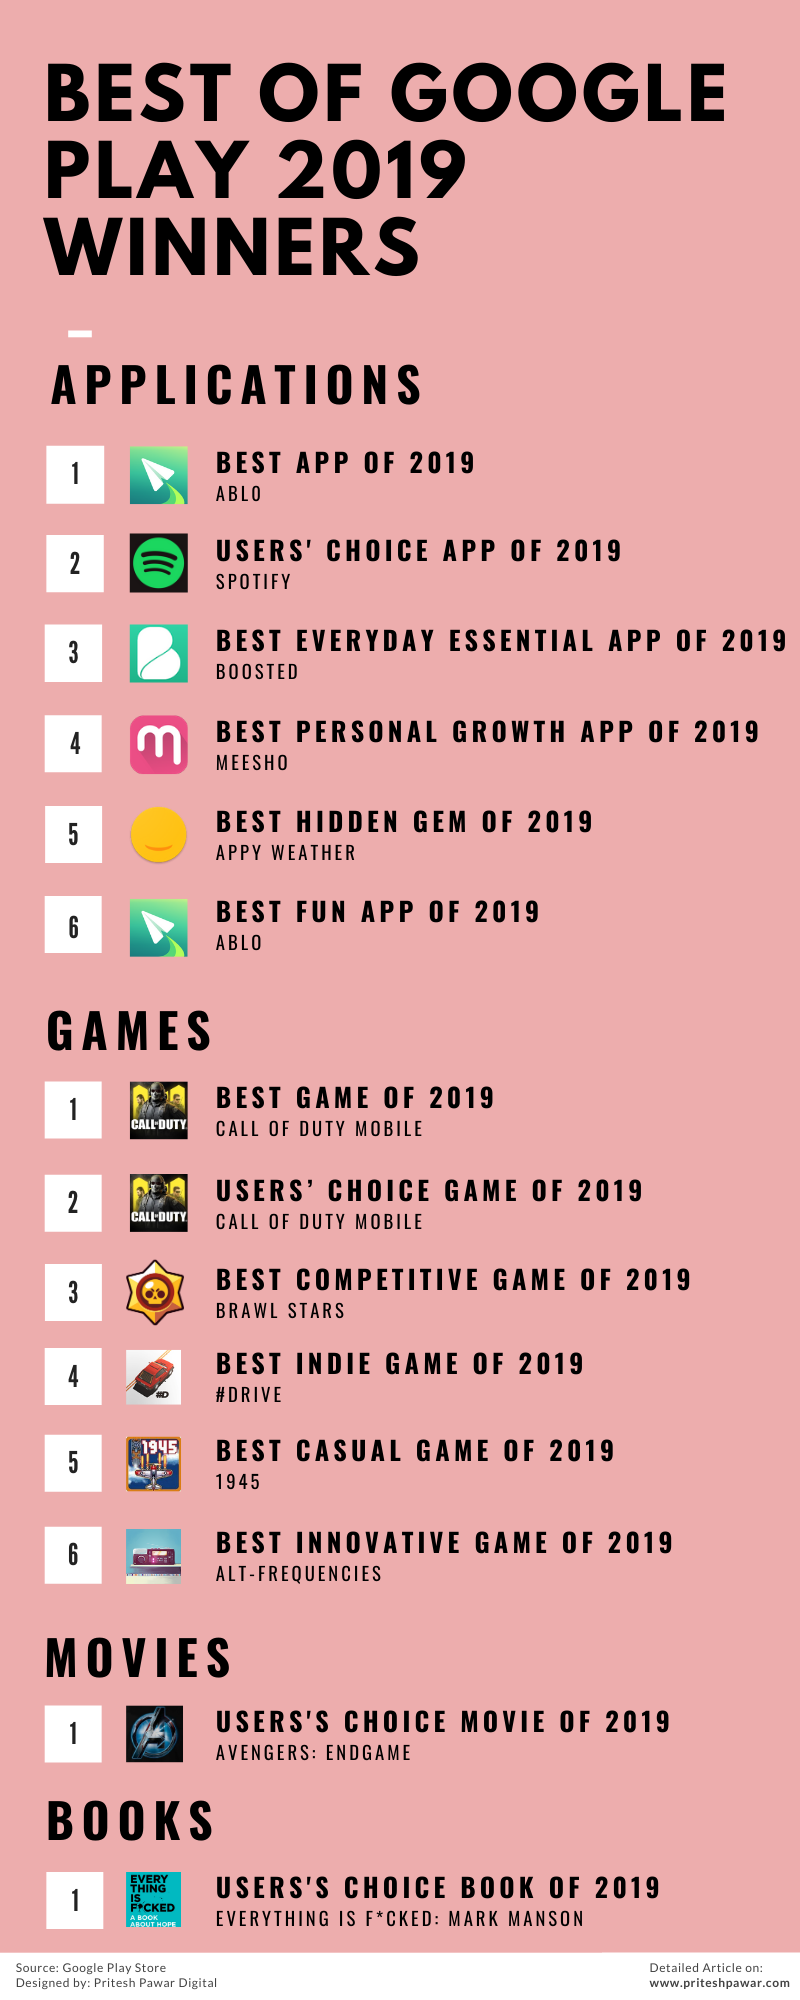 Google Play Best of 2019 - Best Android Apps, Games, eBooks, Movies